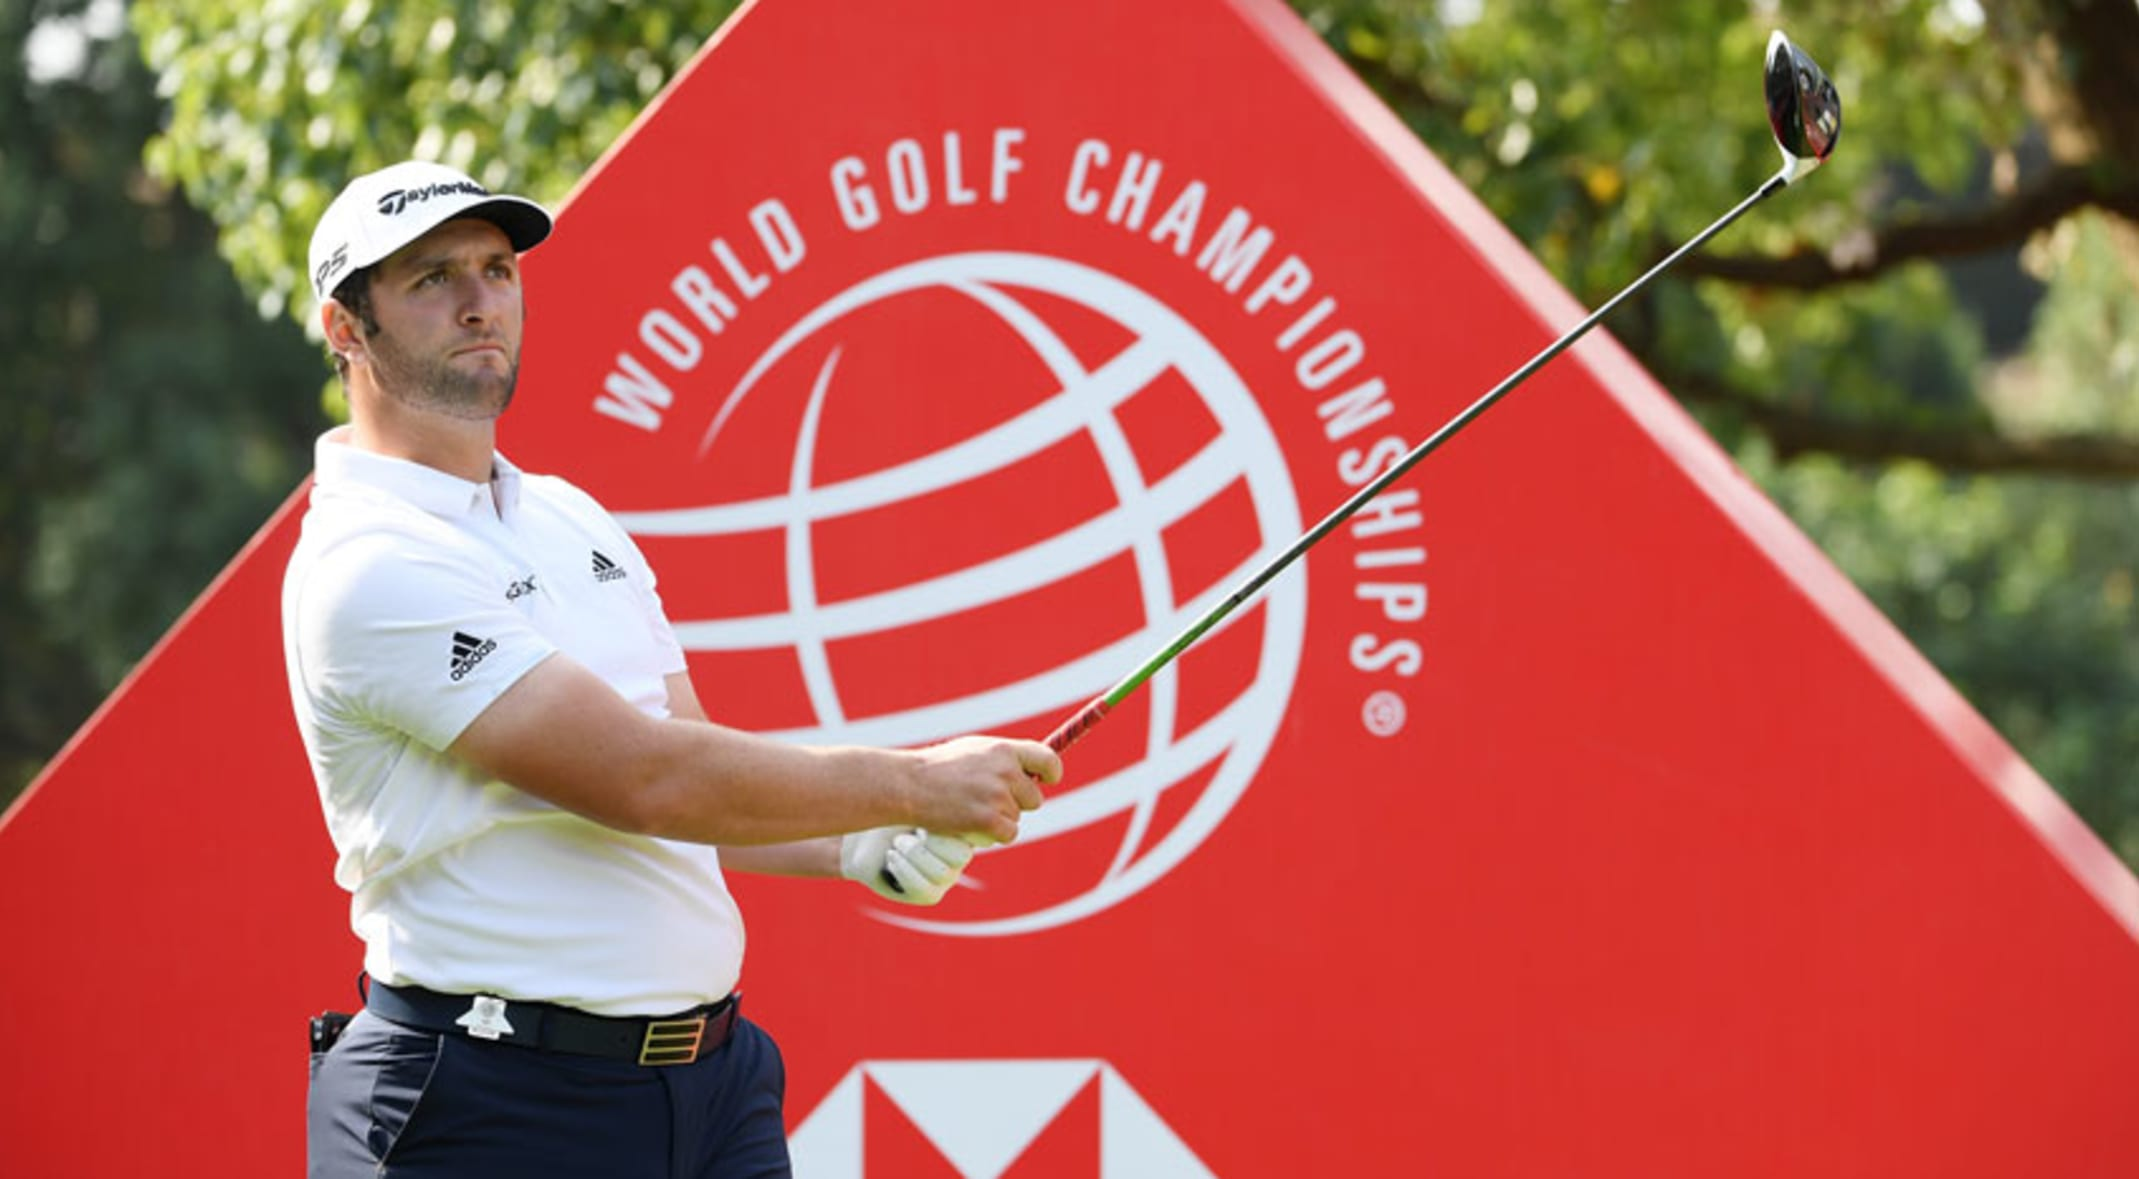 How to watch: WGC-HSBC Champions, Round 2, leaderboard, tee times